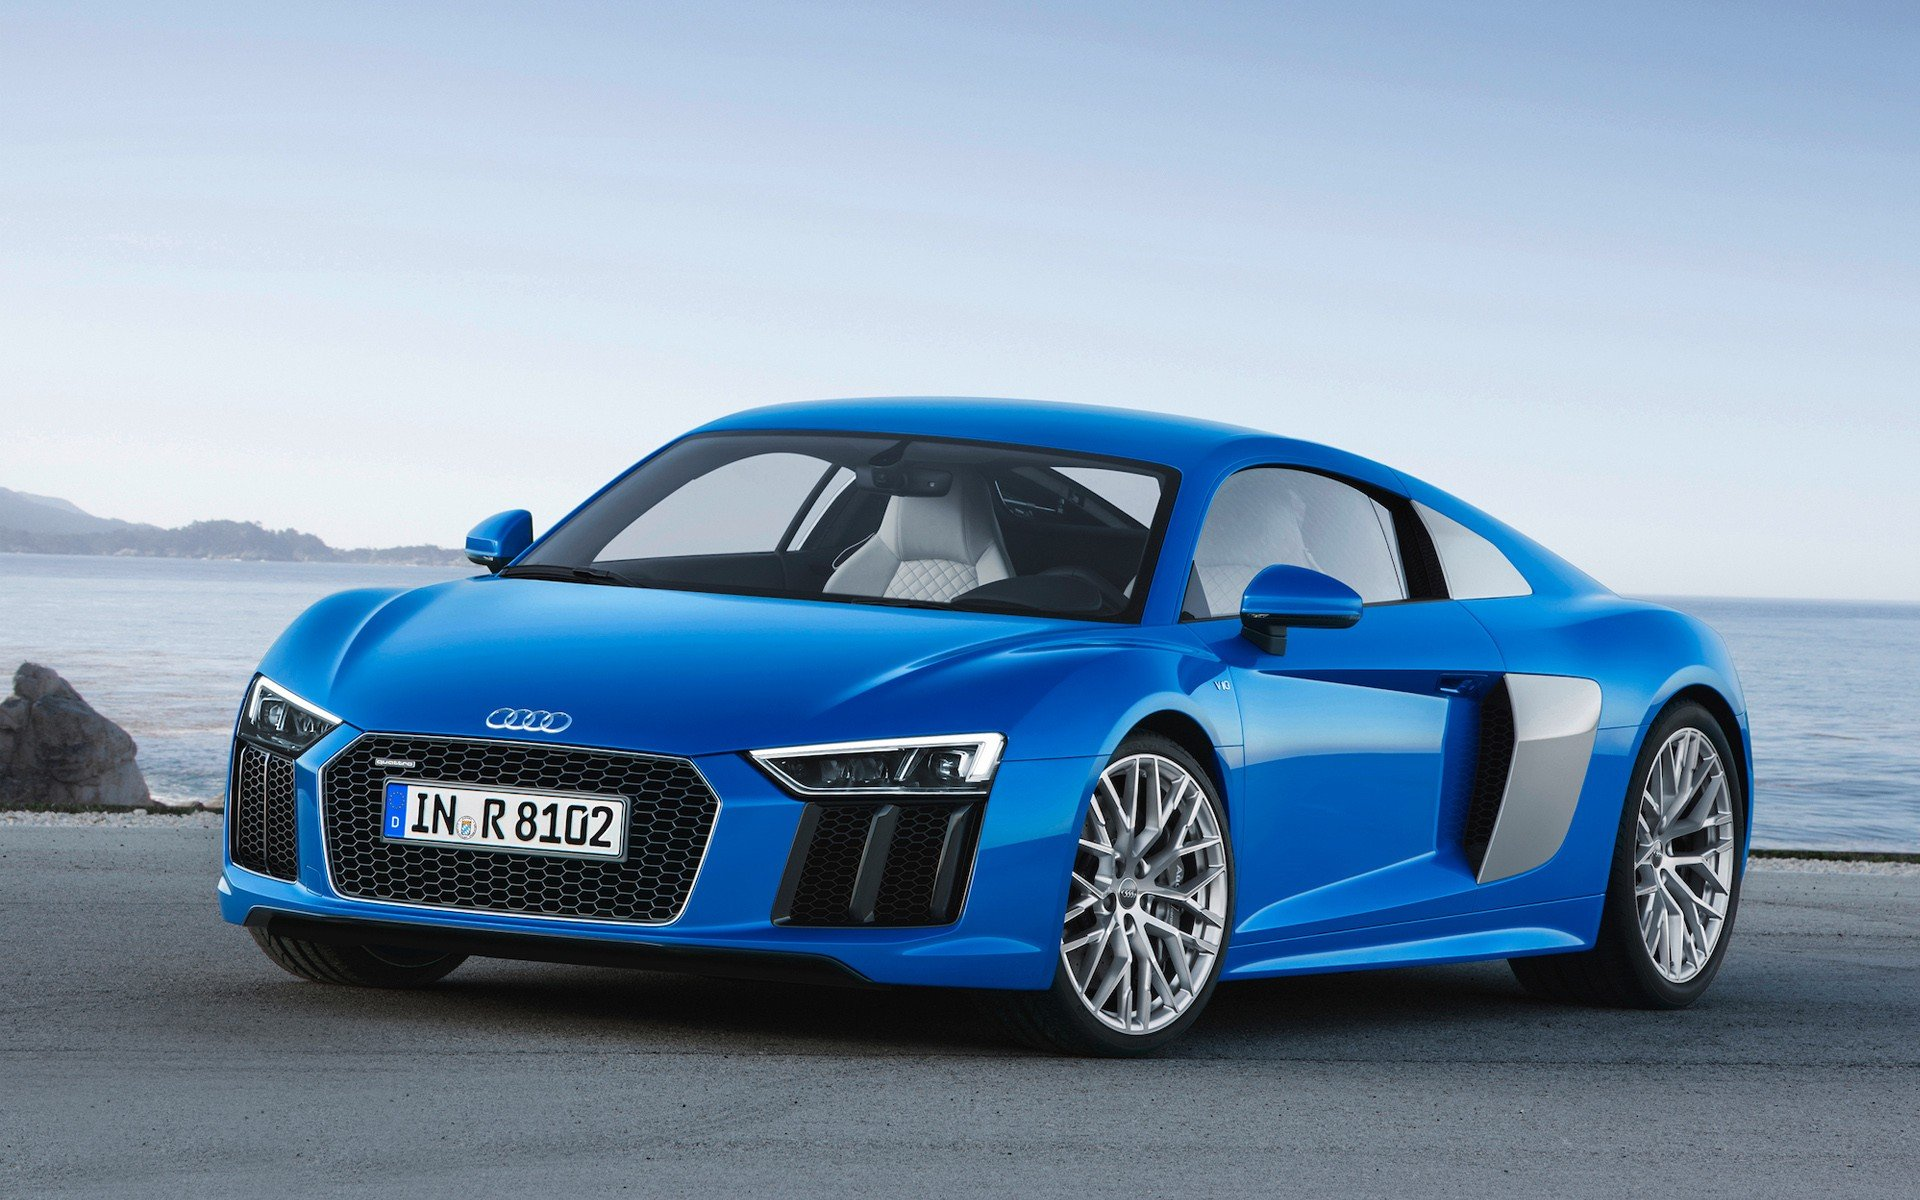 2016 Audi R8 Blue Car Wallpaper   New HD Wallpapers 1920x1200